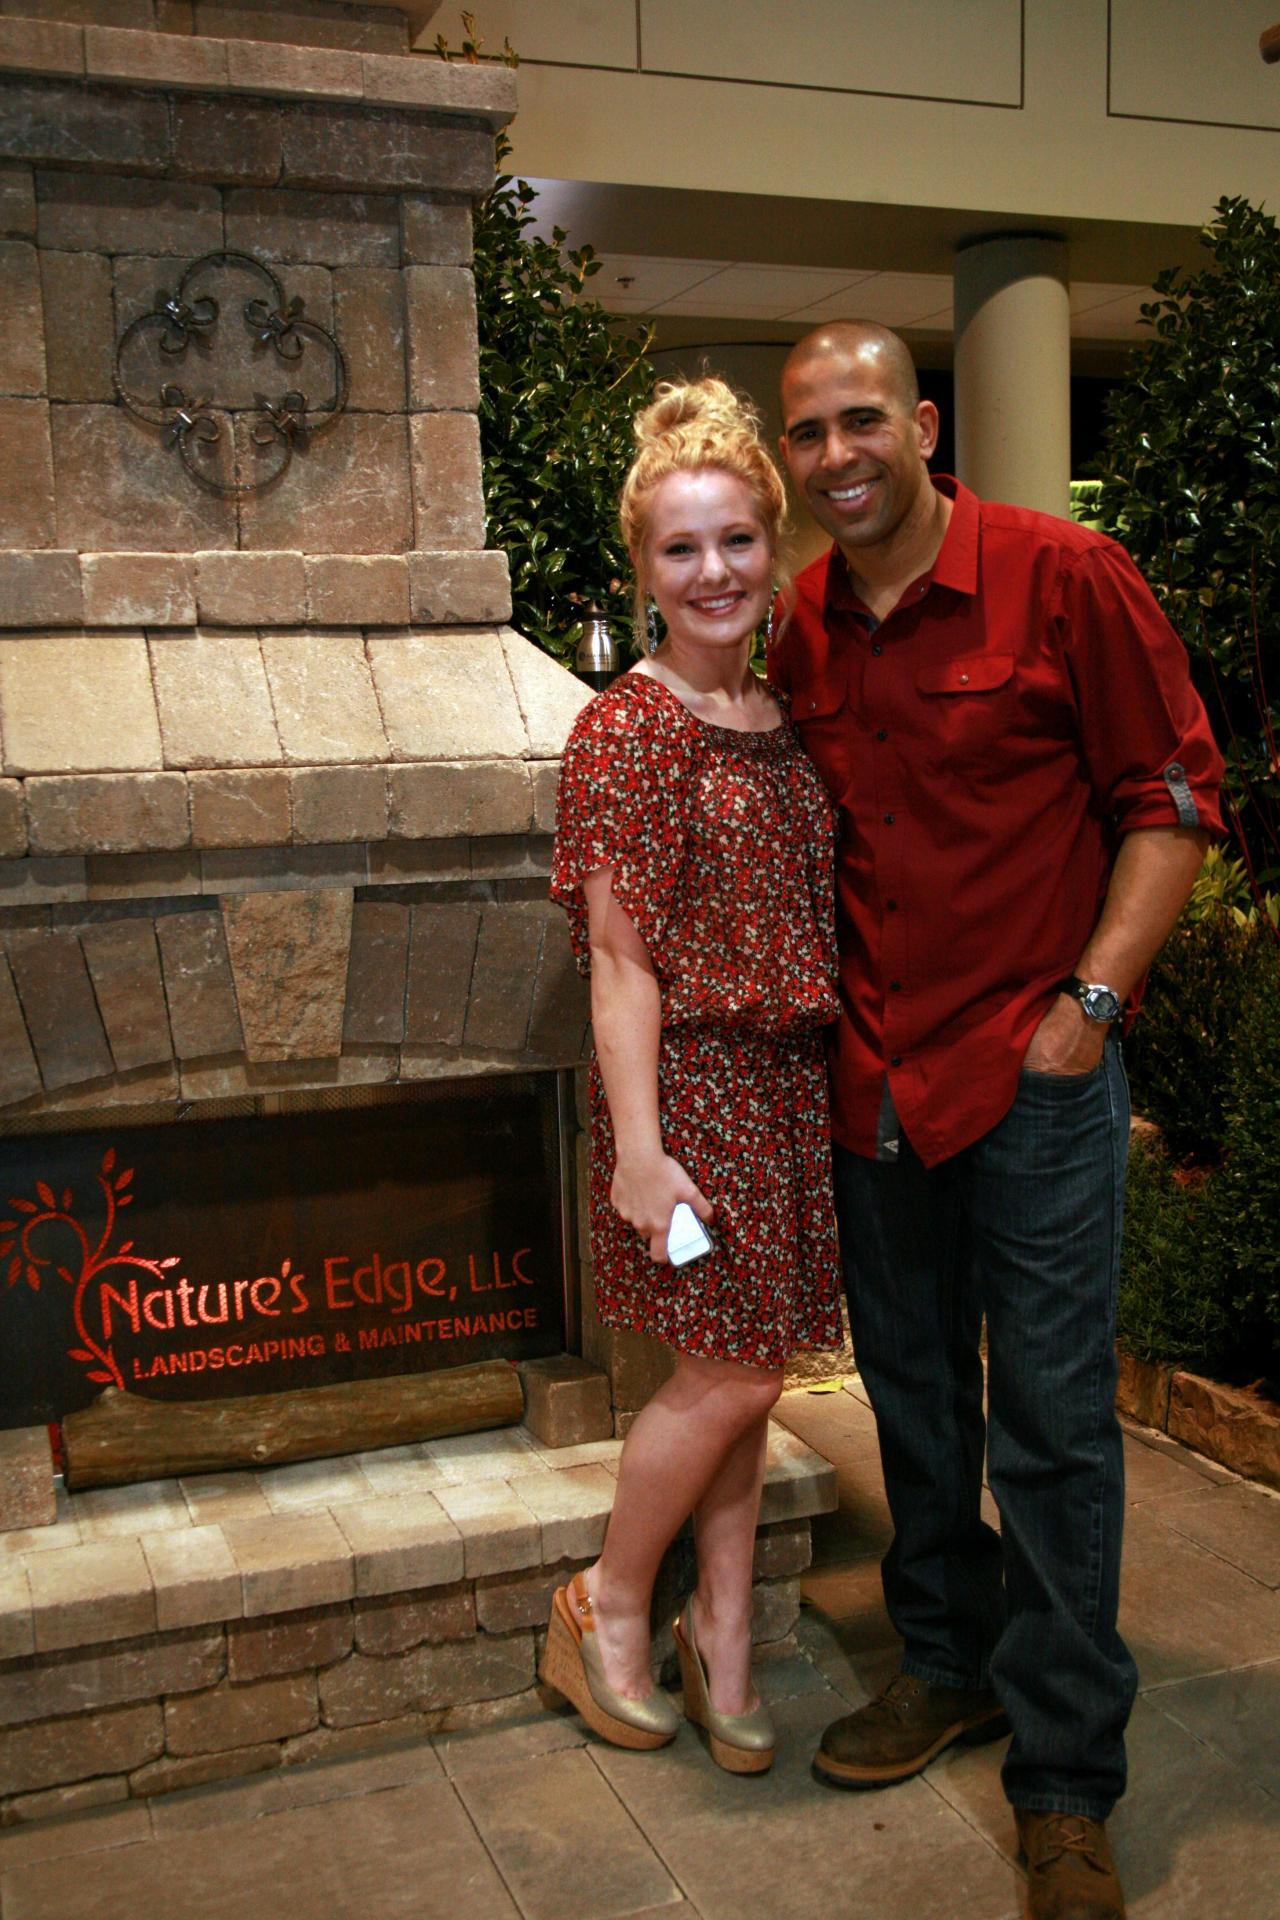 Special thanks to Nature's Edge, LLC for letting the VIP hold the interview with Ahmed Hassan at your beautiful display at the Birmingham Home and Garden Show 2014. You guys are awesome!